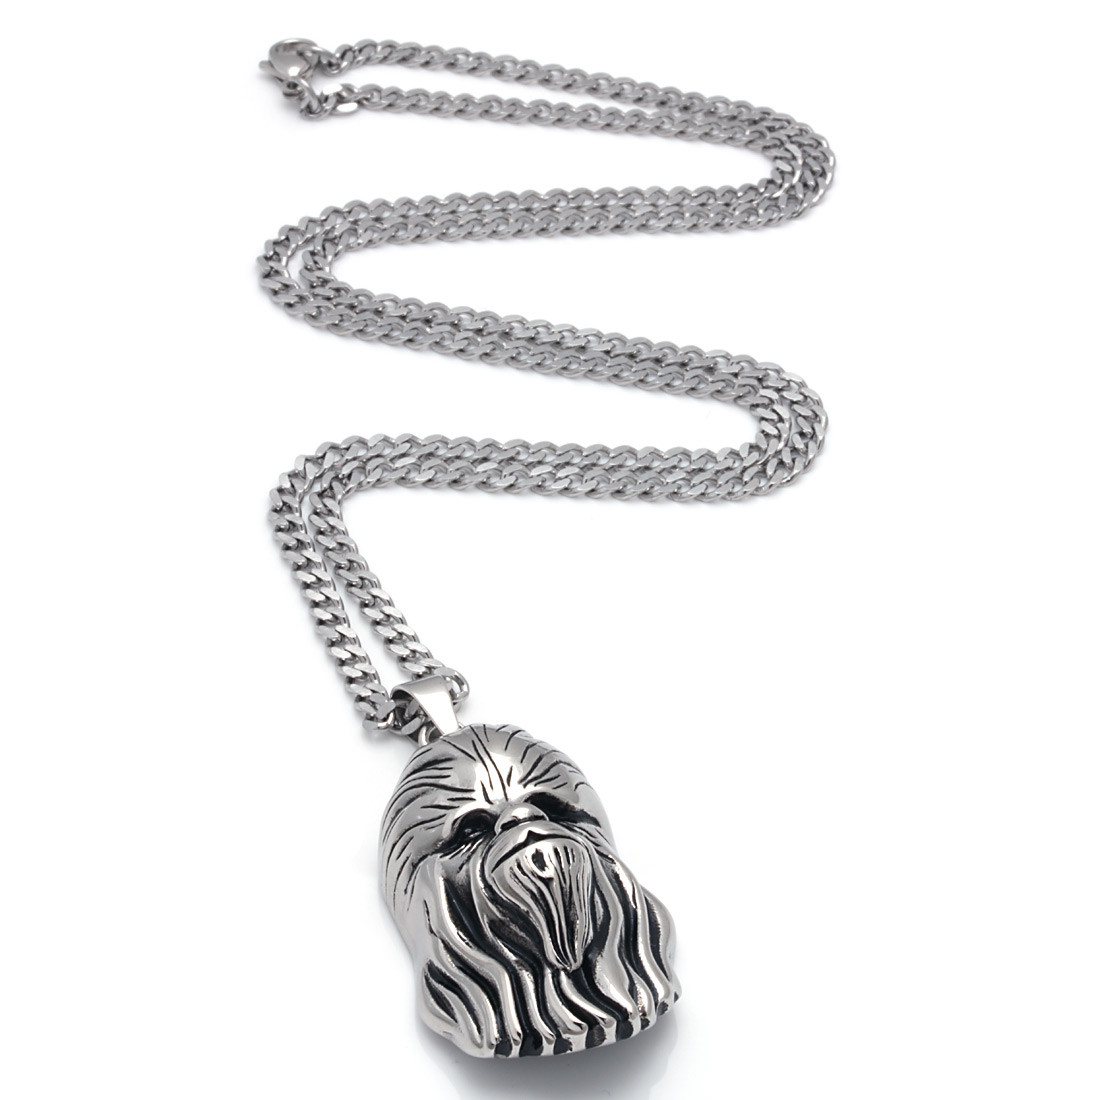 Nkx11336 2 stainless steel chewbacca necklace